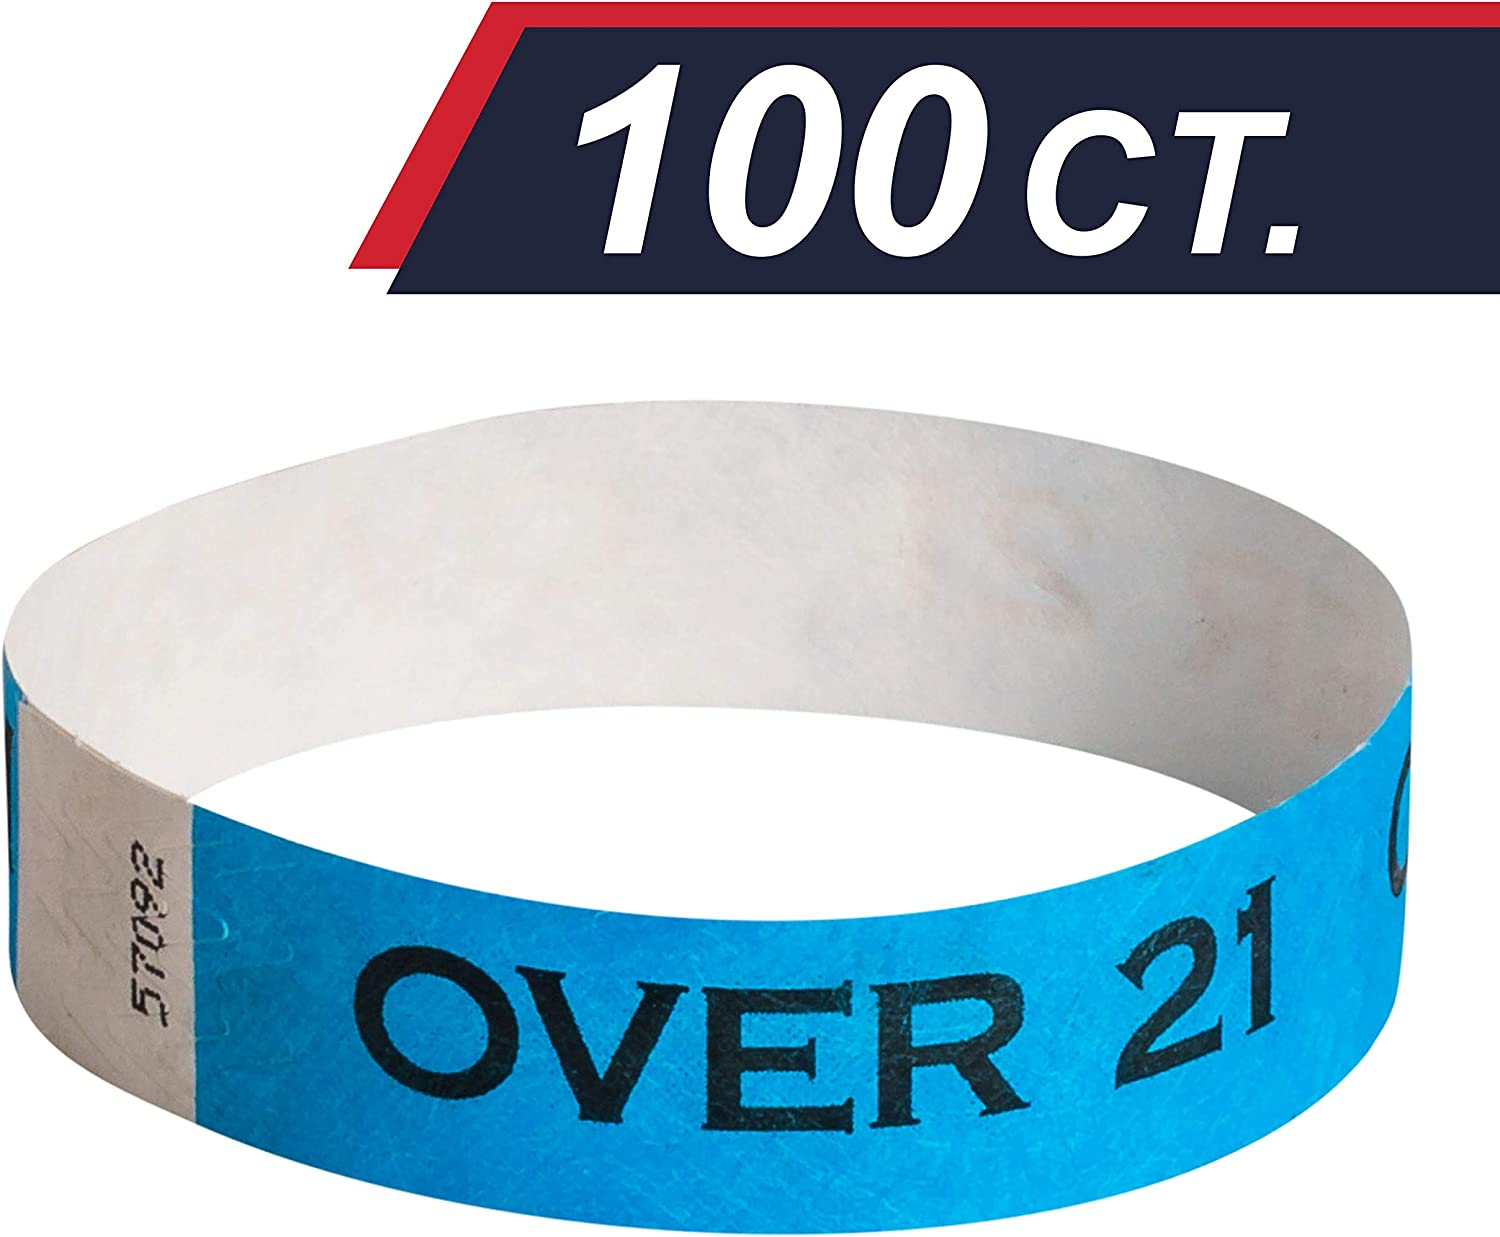 - Drinking Age Verified EventWristband Premium Age Verified Tyvek Wristbands Over 21 /& Verified Identification Event Wristband Paper Bracelets 100 Count, Red Neon Wrist Bands For Festivals